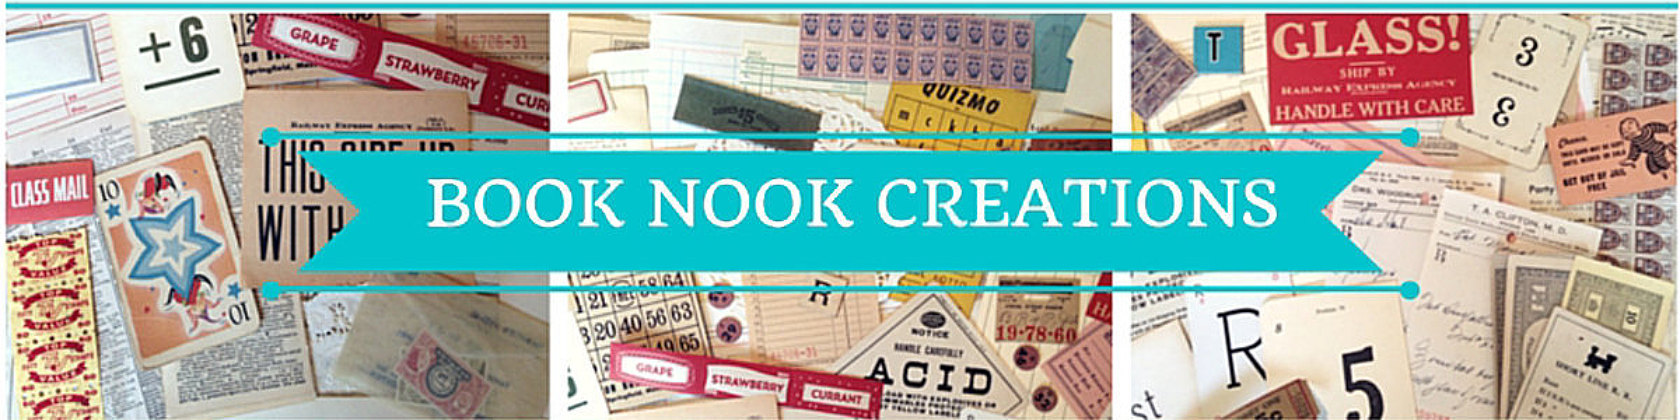 Book Nook Creations